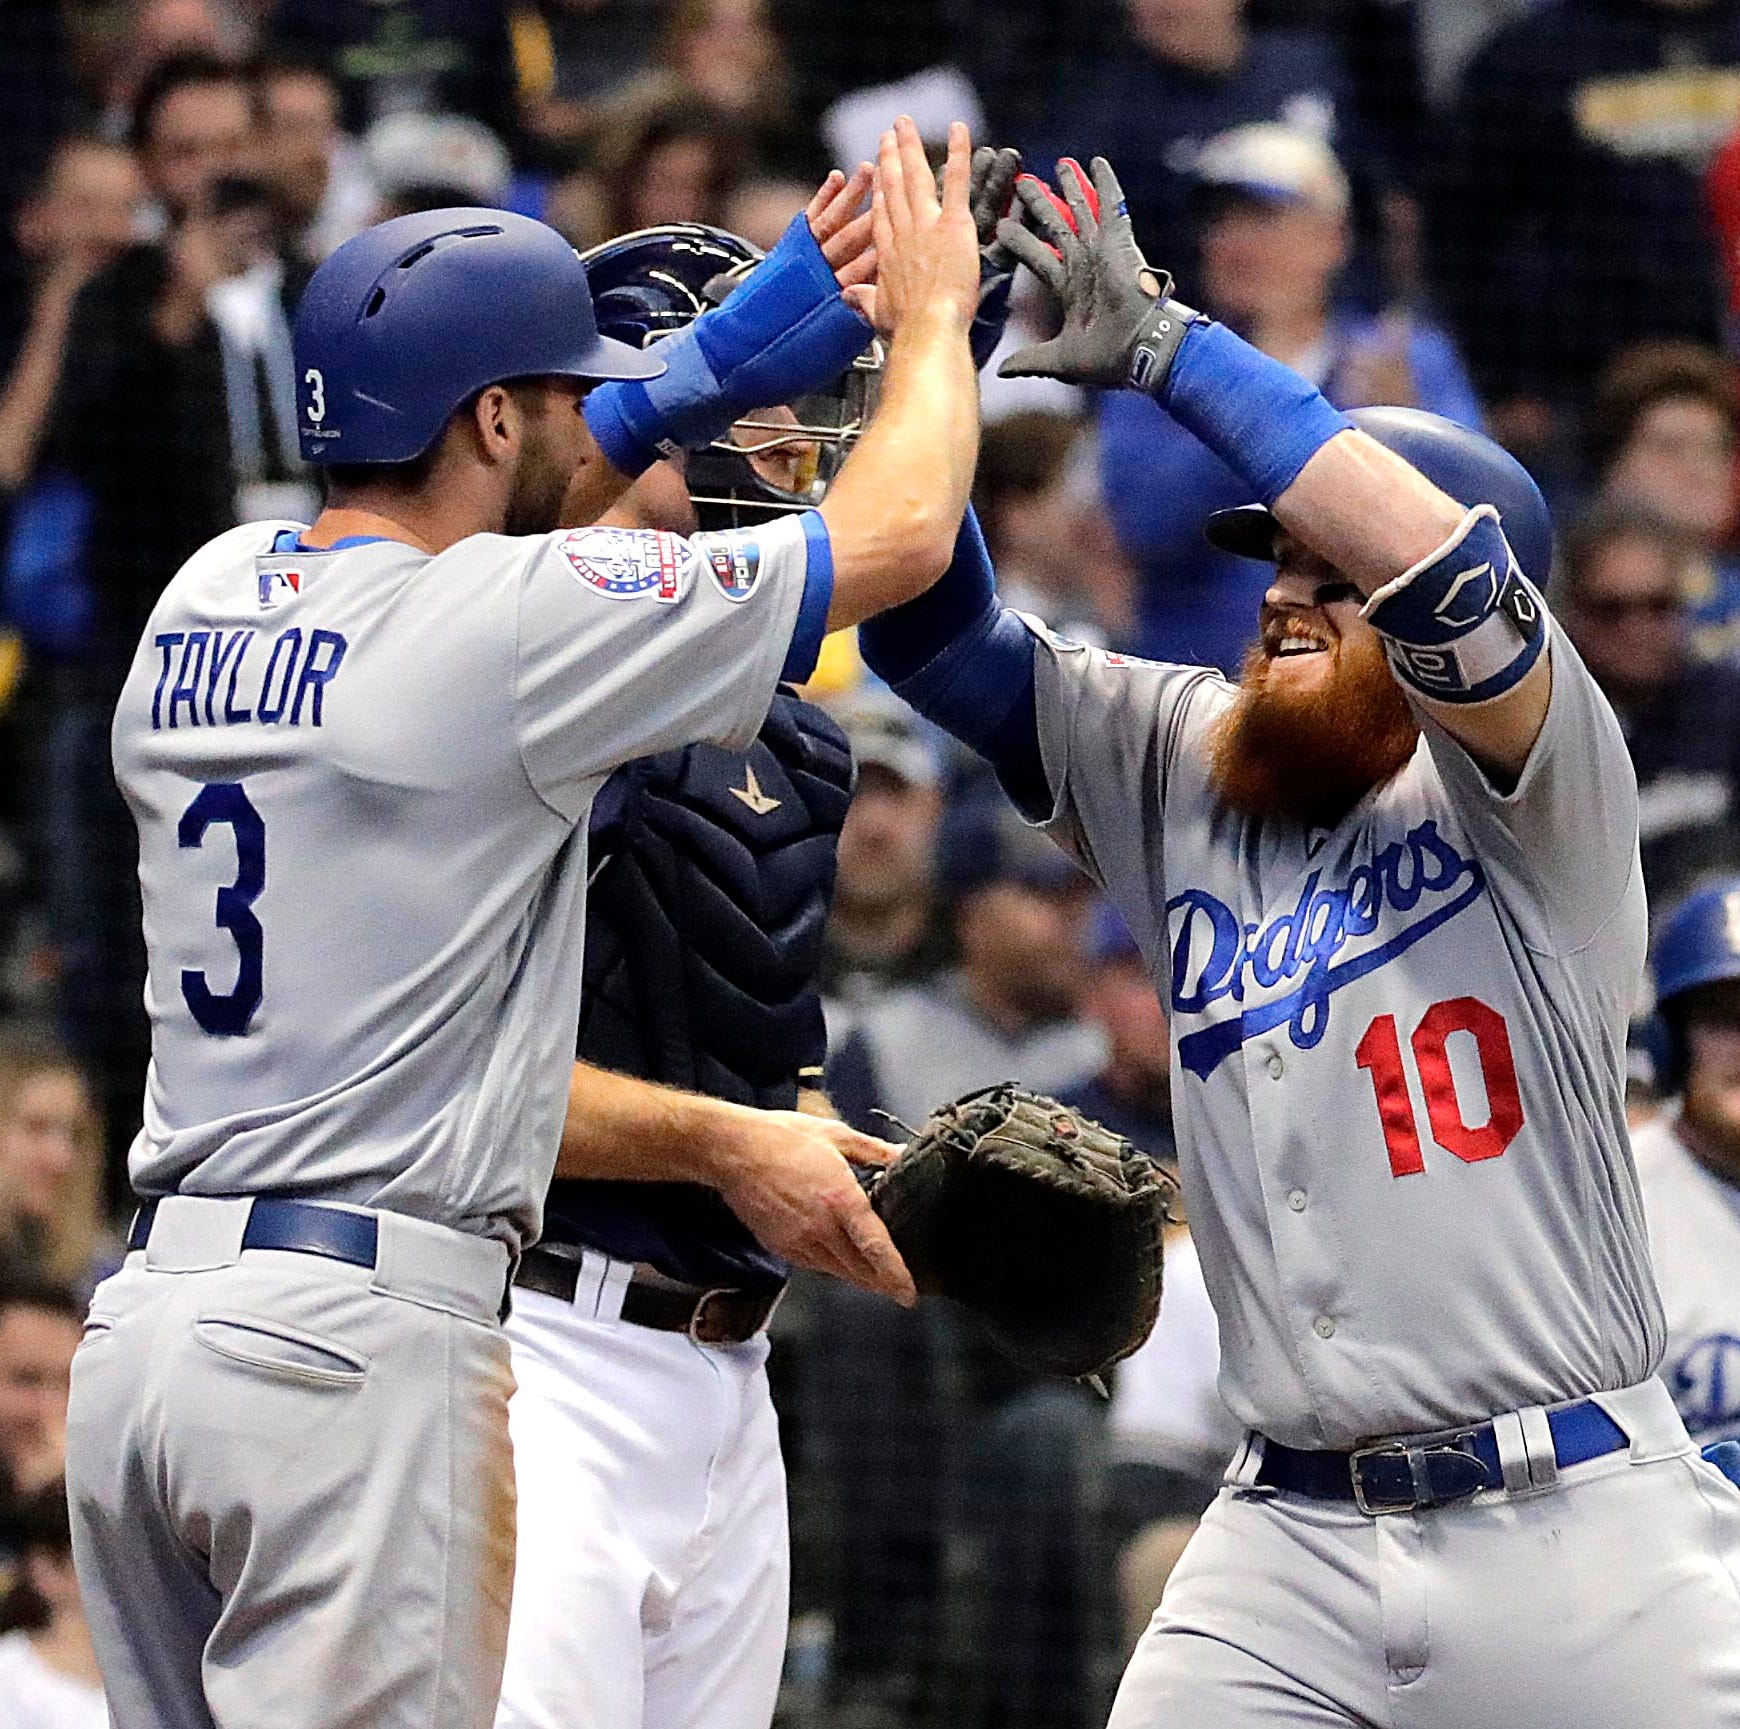 Dodgers 4, Brewers 3: Rare letdown by bullpen leads to Game 2 loss